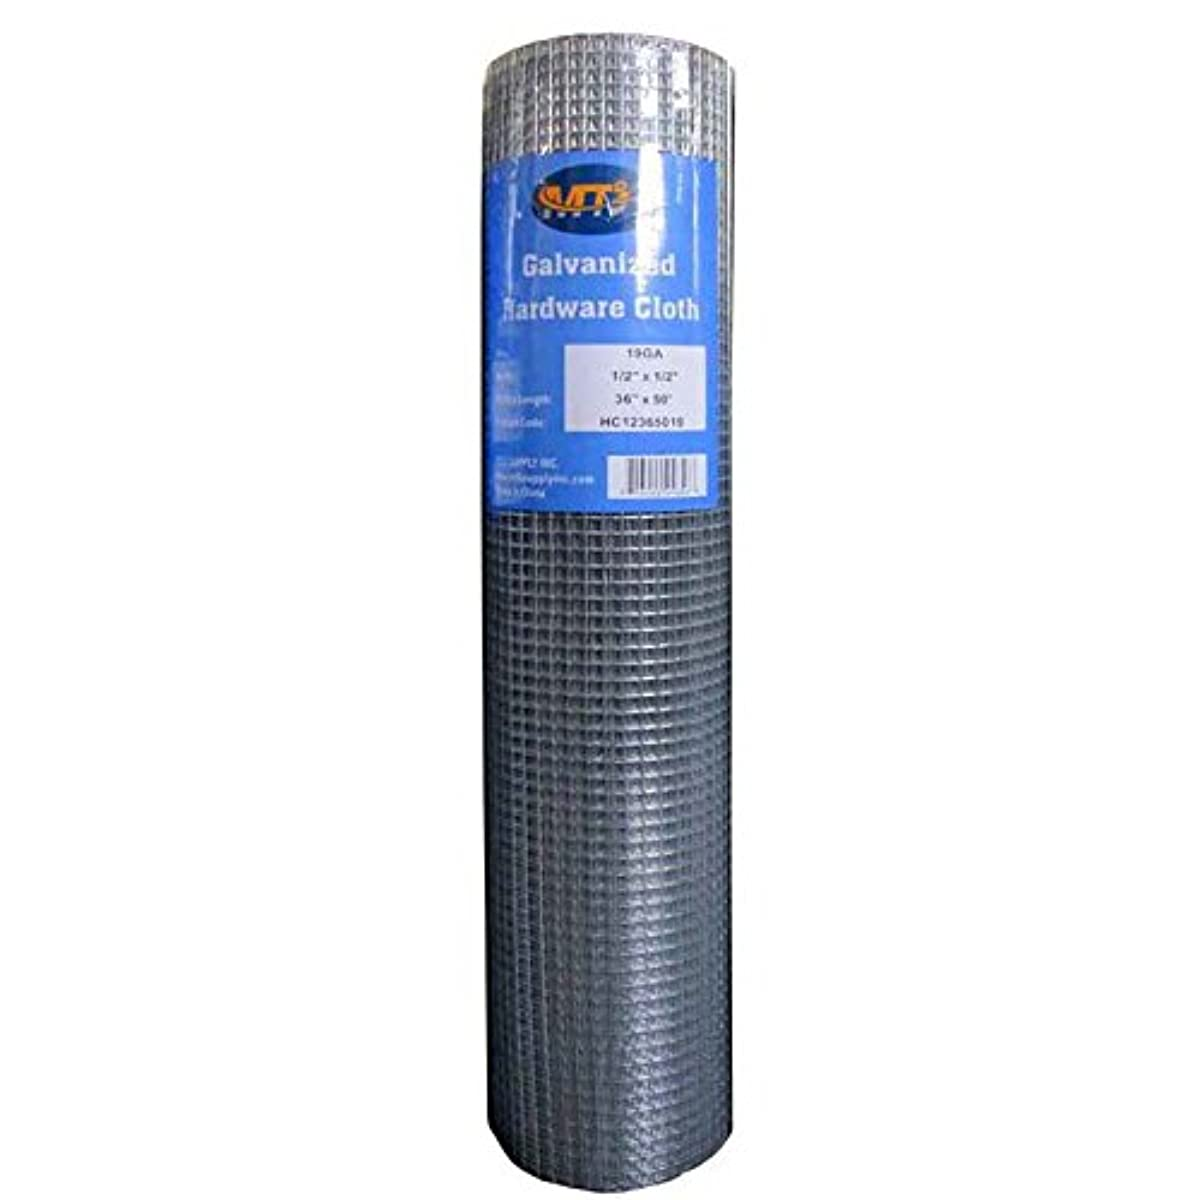 MTB Galvanized Hardware Cloth 36 Inch x 50 Foot -1/2 Inch x 1/2 Inch 19GA (Also Sold in 25' Length,24